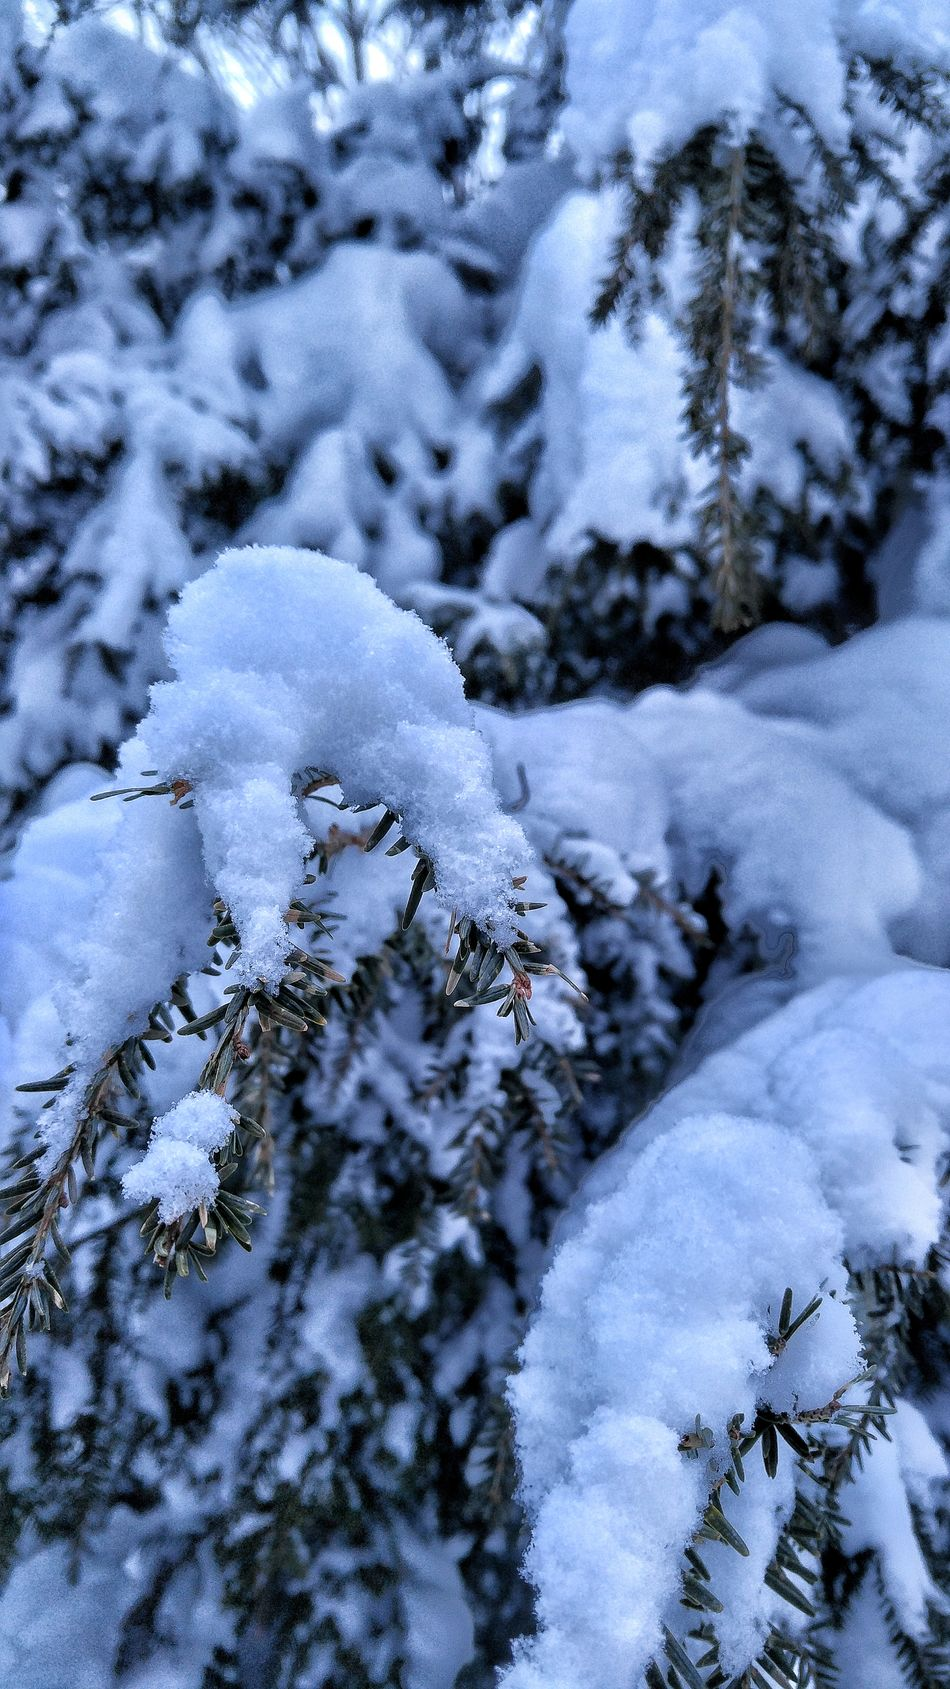 Winter Snow Cold Temperature Weather Close-up Nature No People Covering Day Outdoors Beauty In Nature Tree High Snow Freezingweather Freeze Shots New England  USA Photos